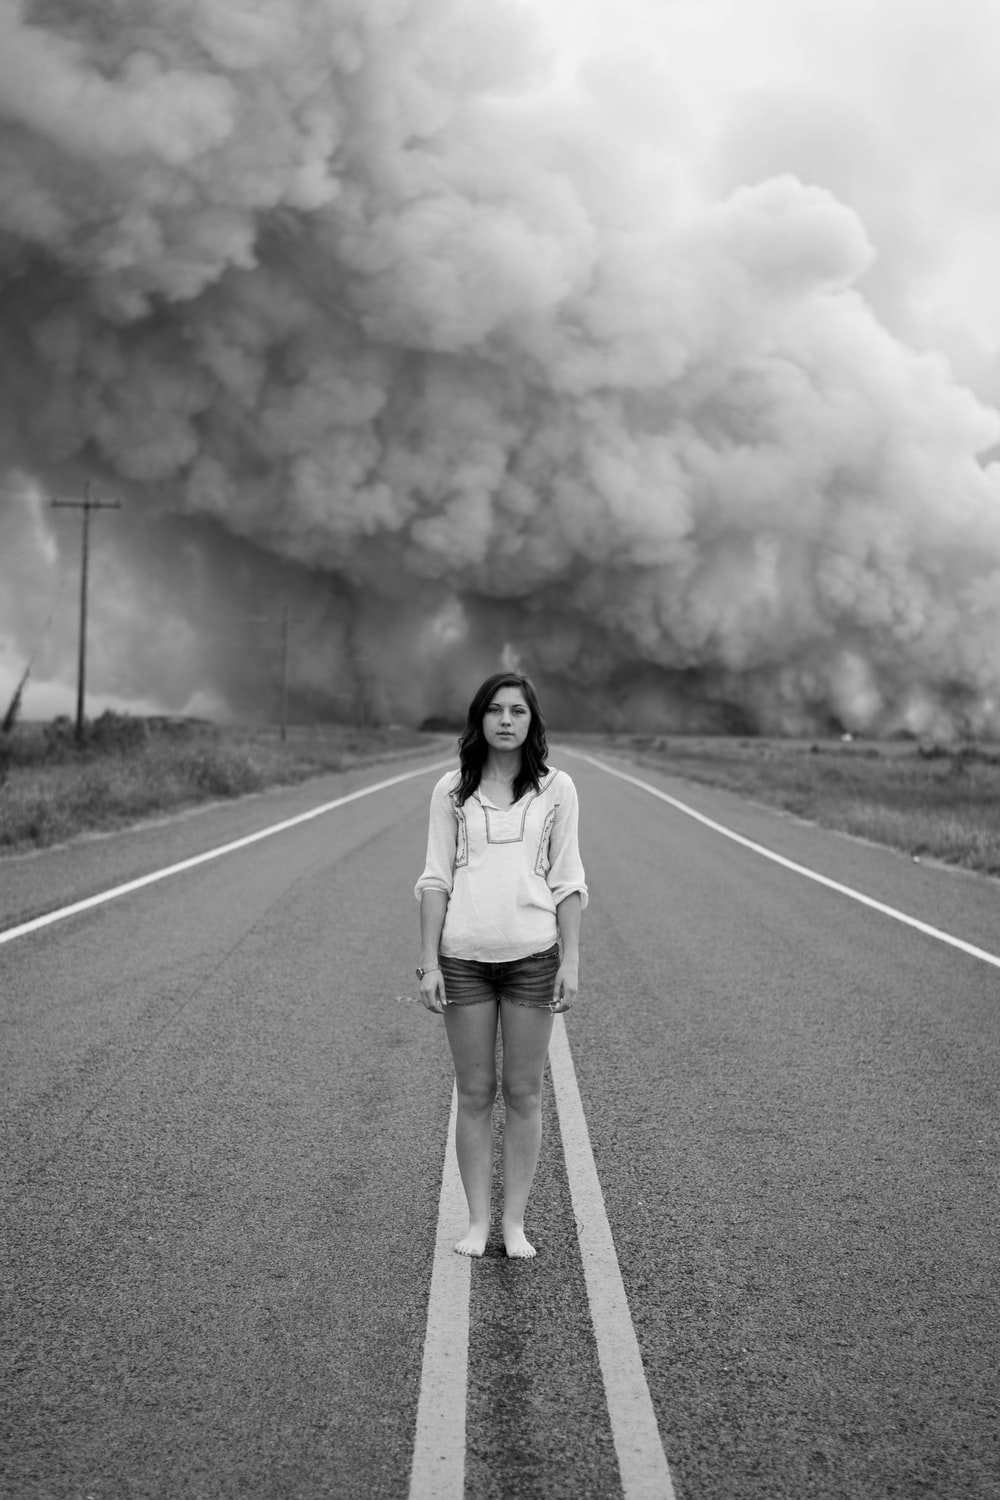 Grayscale Photo Of Woman Standing In The Middle Of The Road